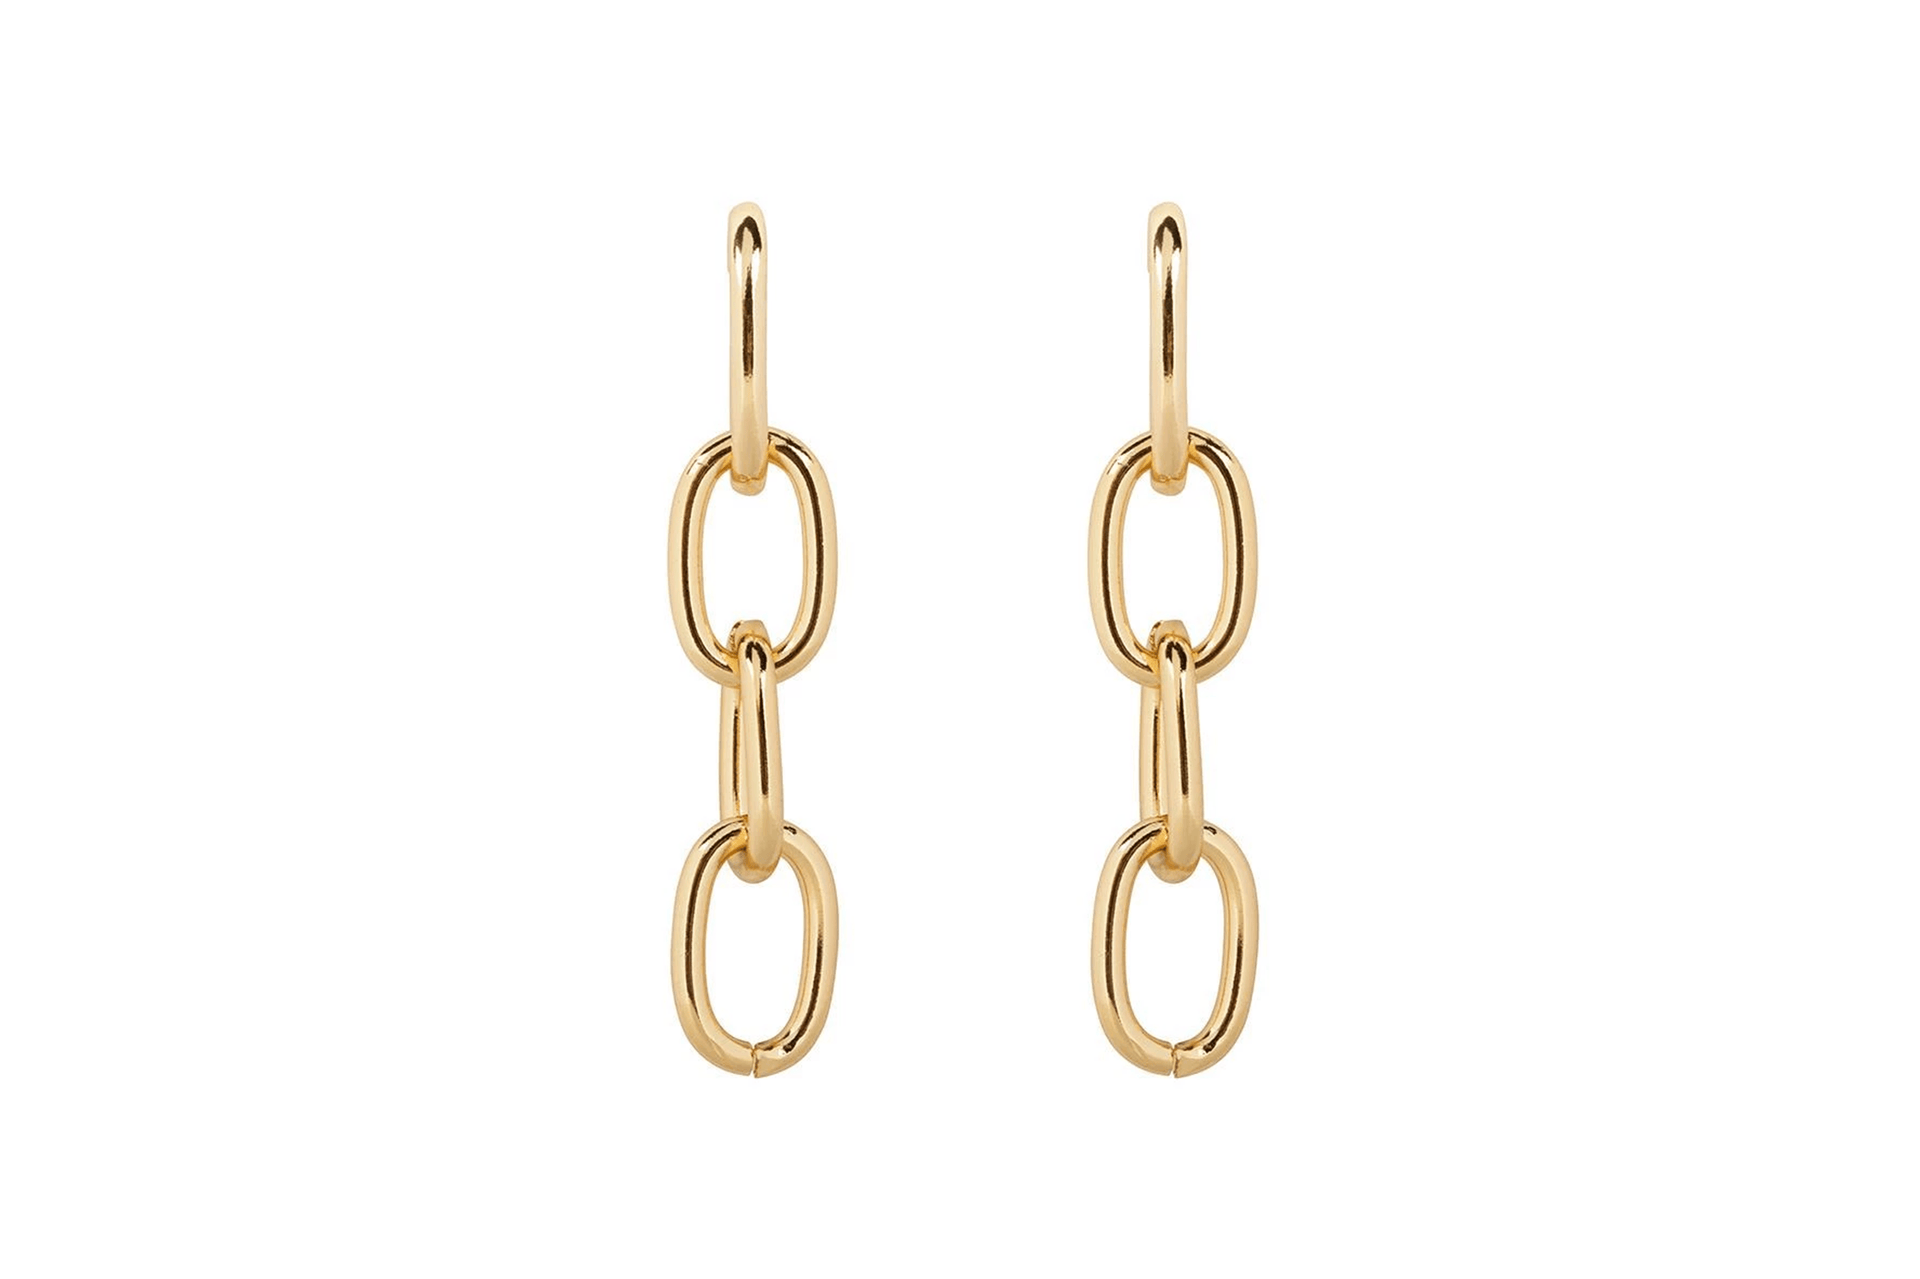 CHAIN IT UP EARRINGS JEWELRY CLUB MANHATTAN